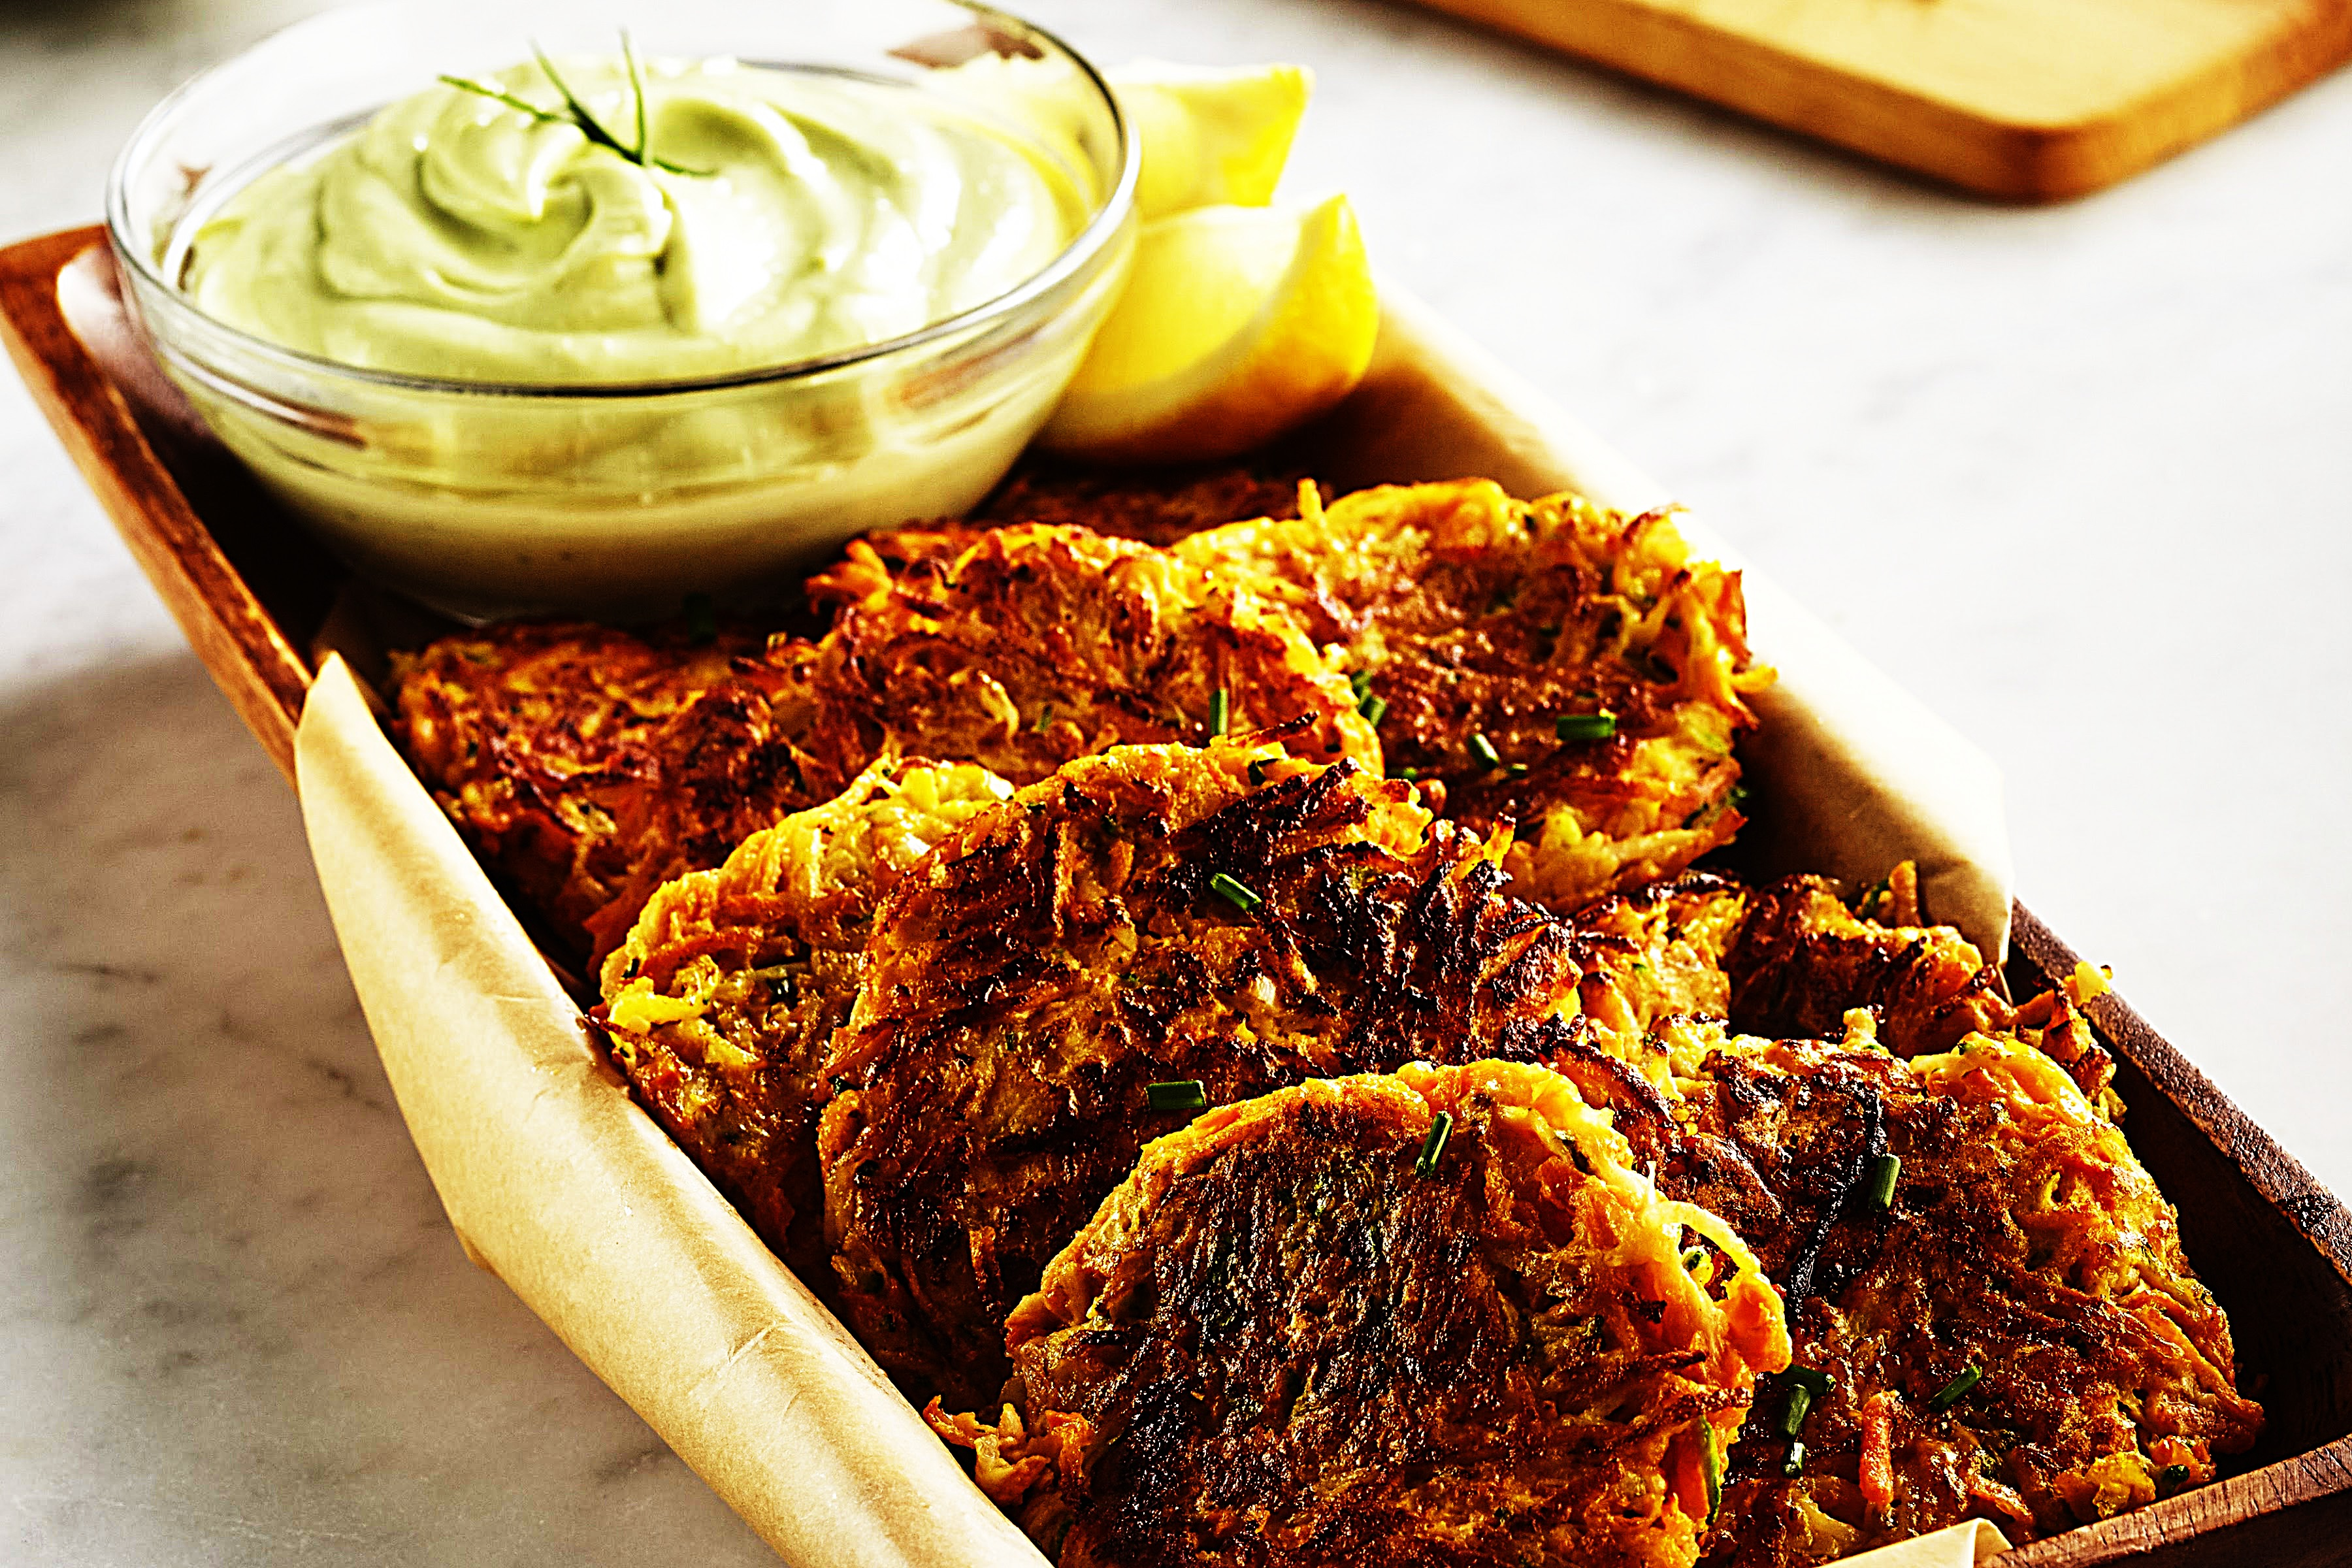 Stupid-Easy Recipe for Vegetable Fritters with Avocado Blue Cheese Dip (#1 Top-Rated)